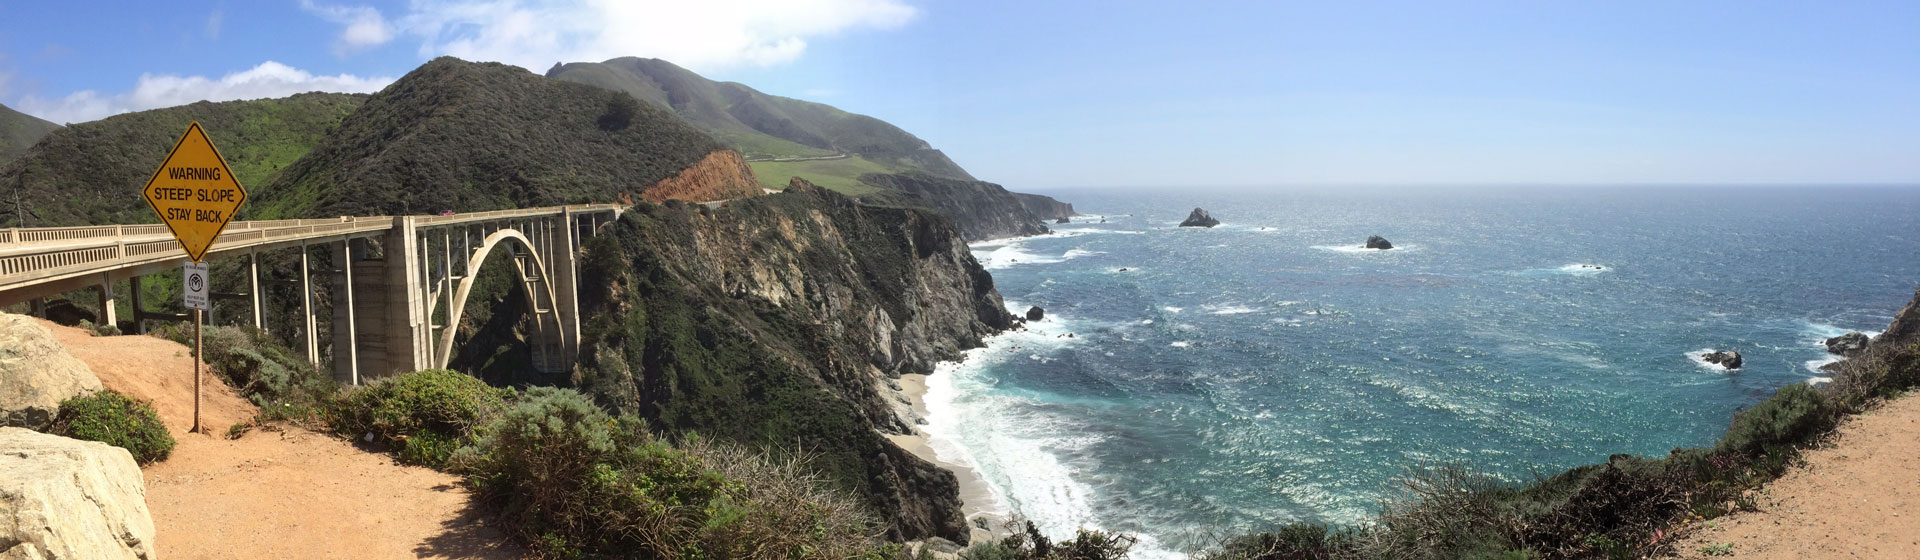 Bixby Bridge vid Kaliforniens kust.